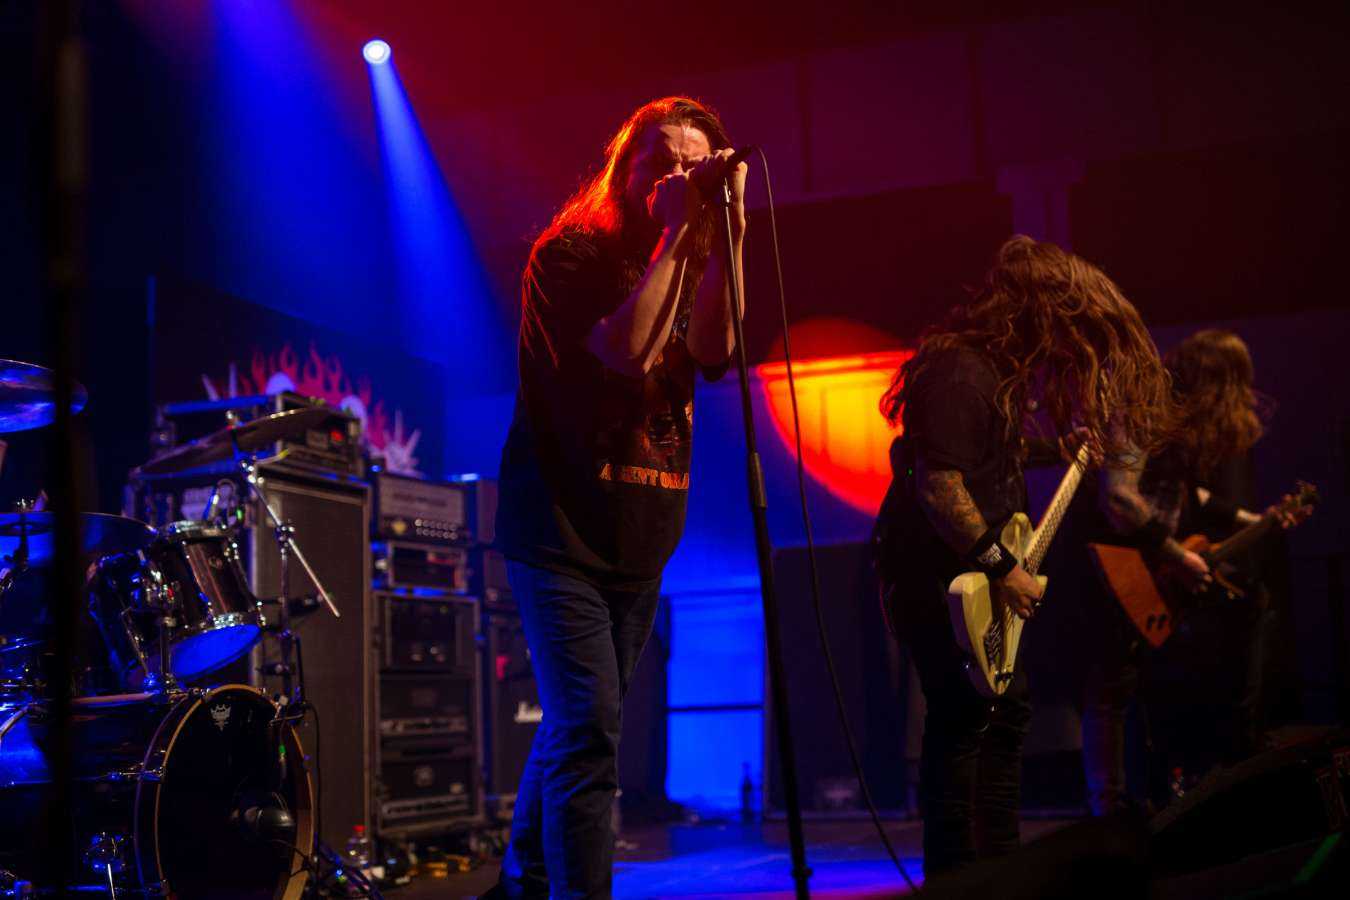 Power trip live images and boomerang